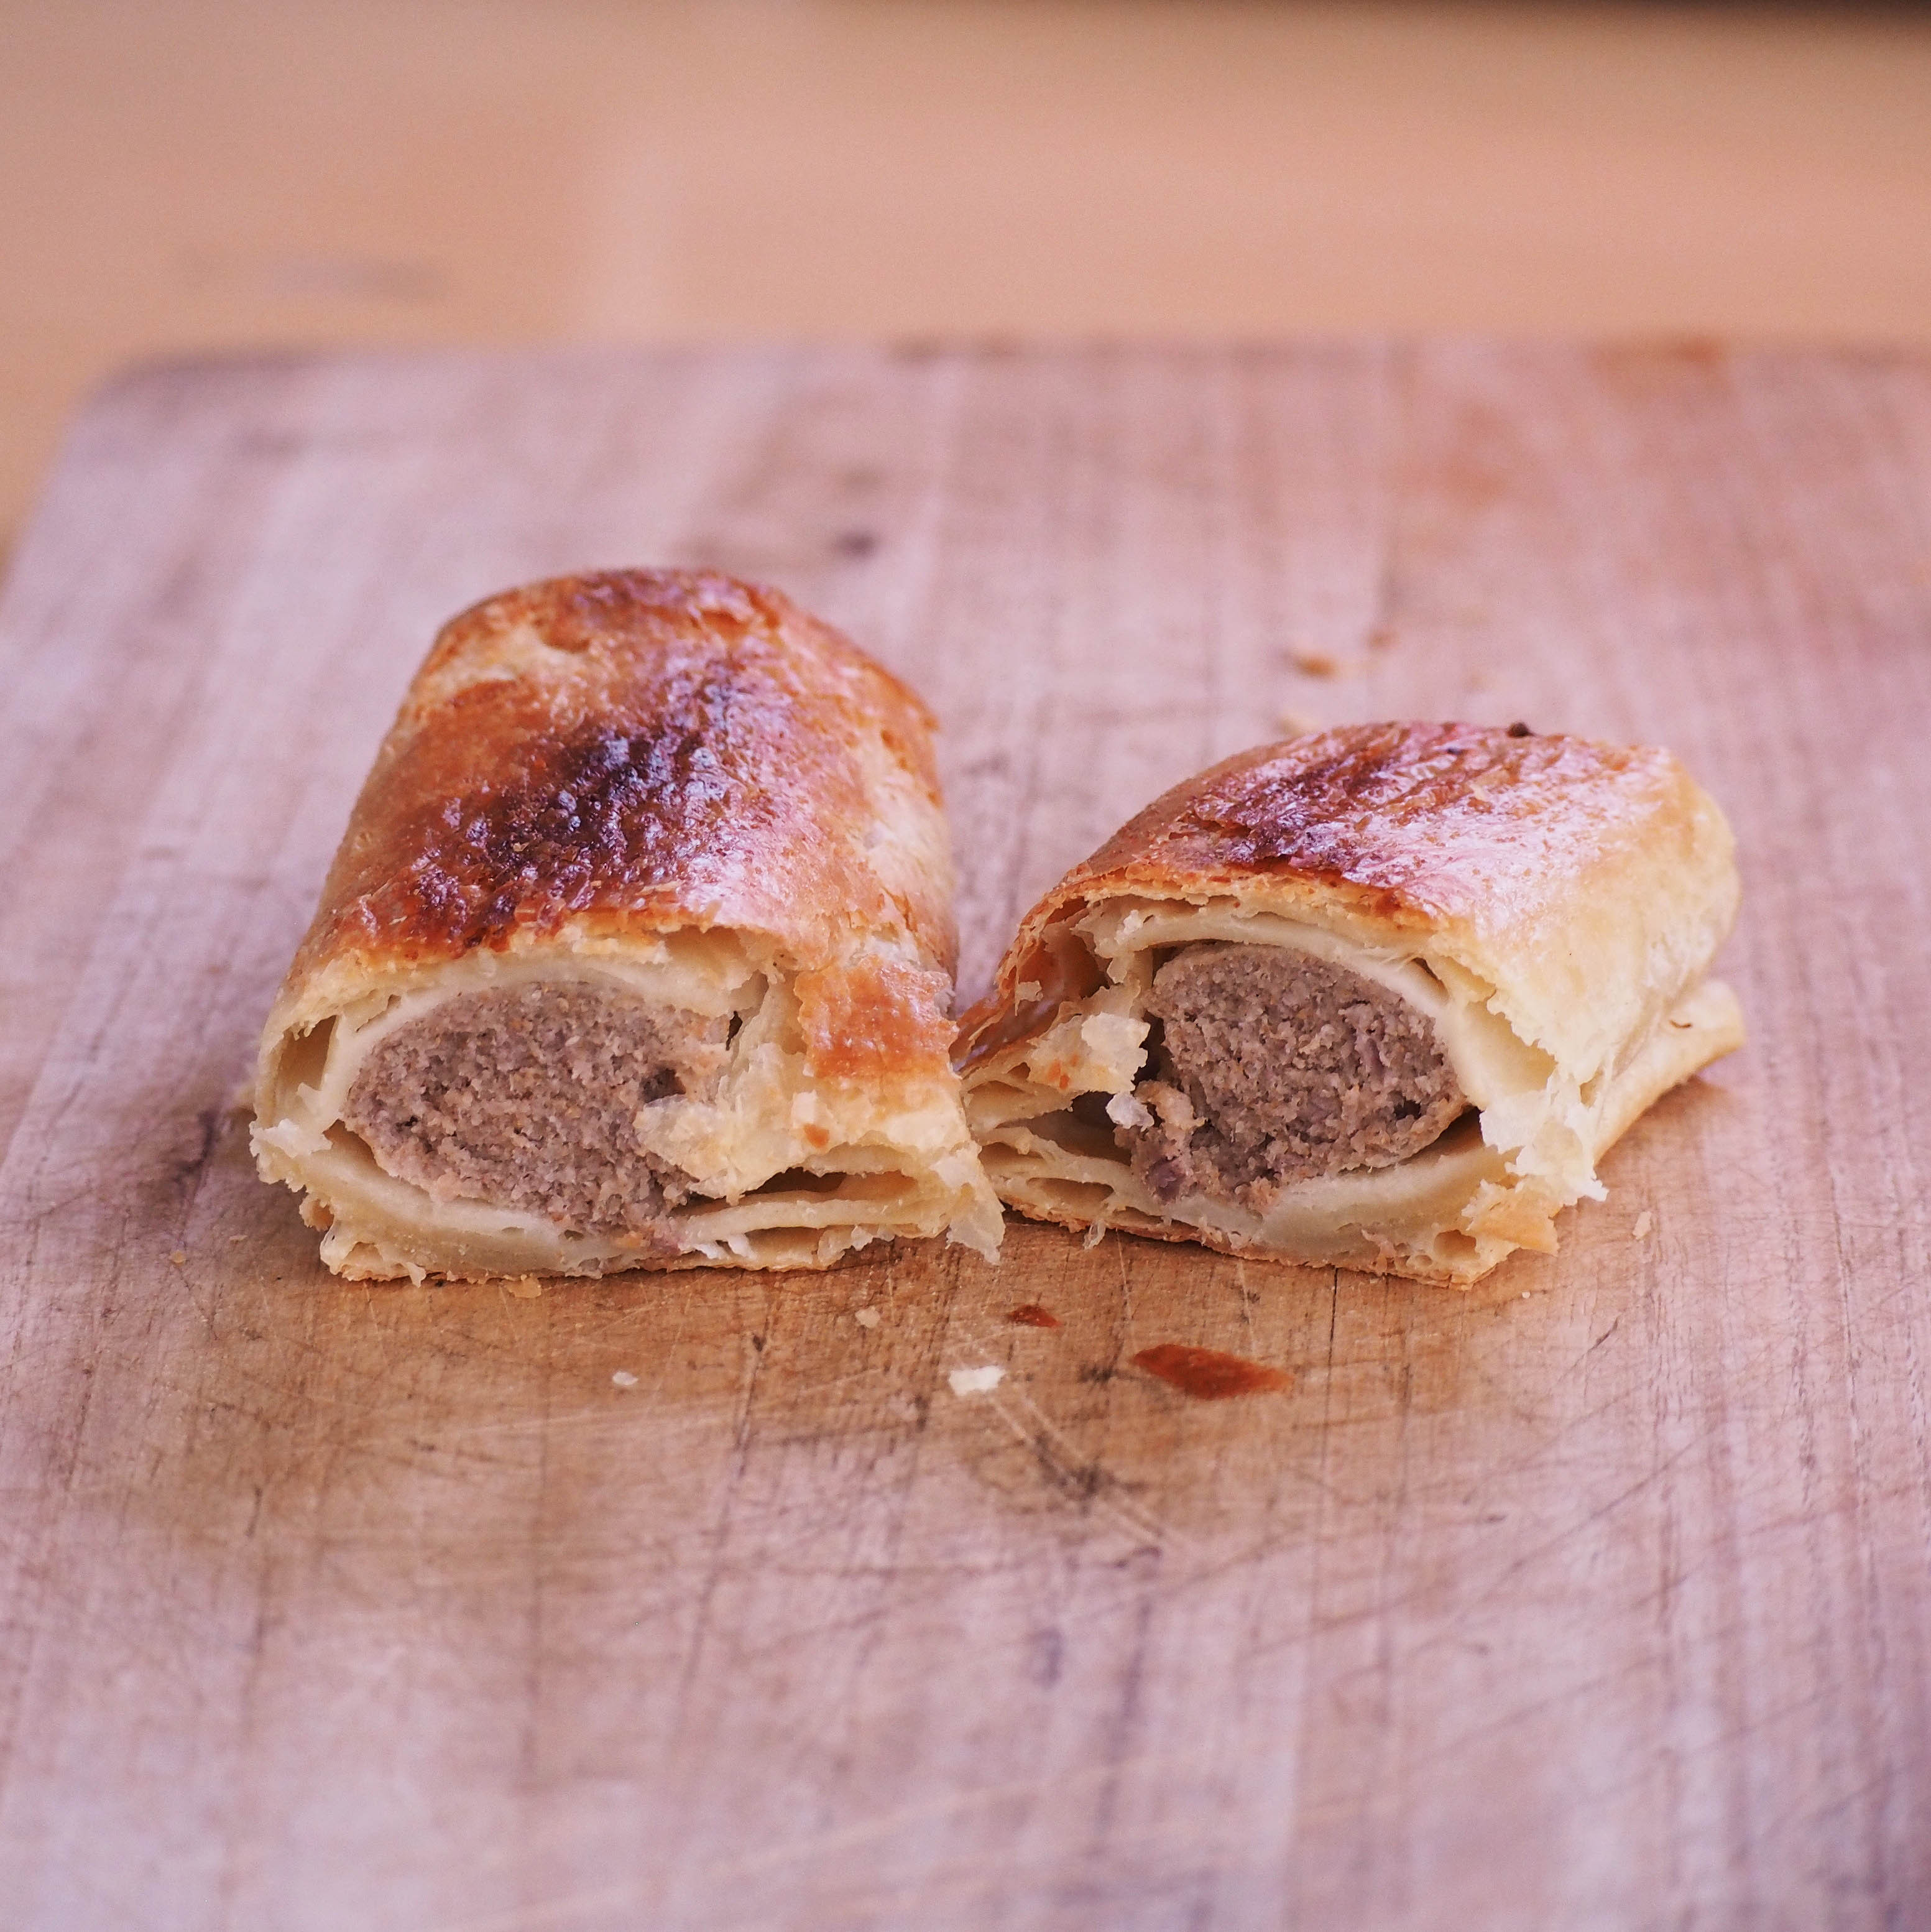 New & Exclusive! Vili's Imported Original Australian Sausage Roll (110g)